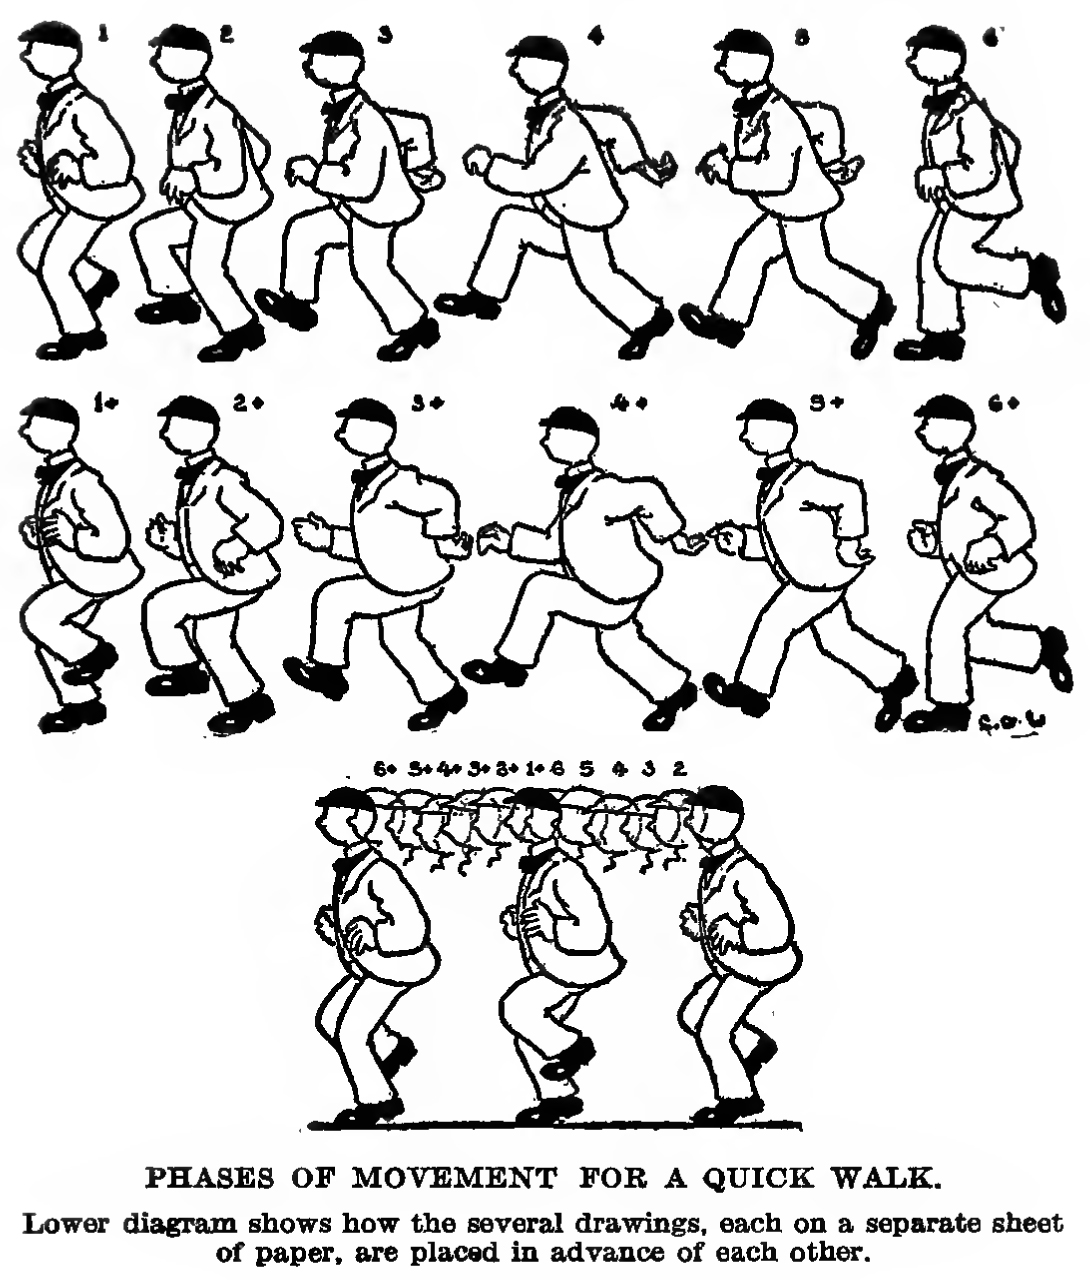 1090x1280 How To Draw And Animate A Person Walking Or Running